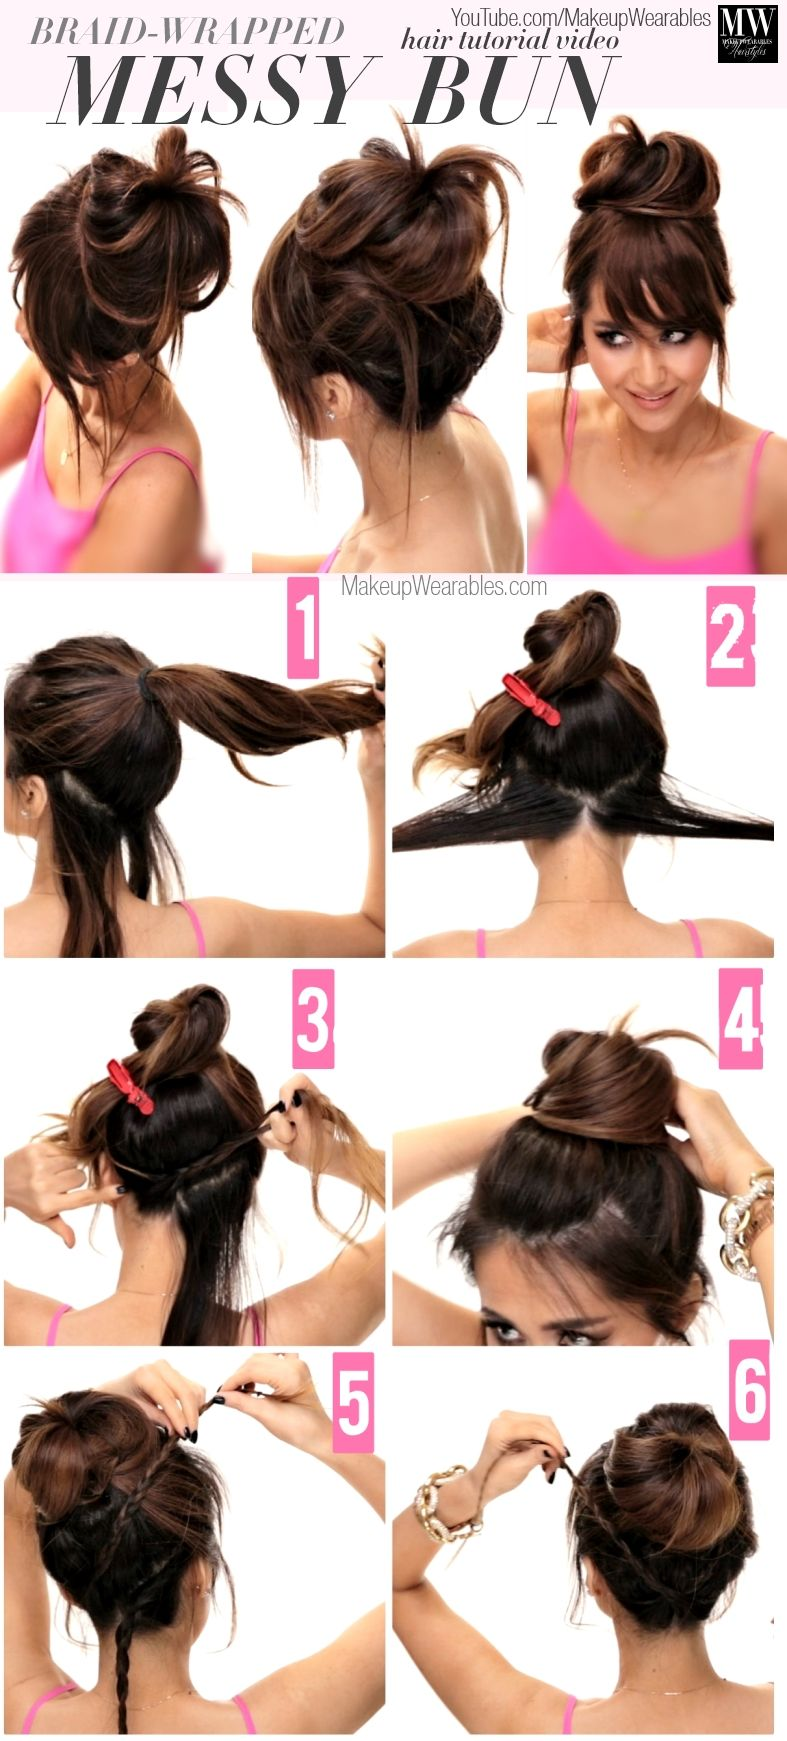 4 Lazy Girl S Easy Hairstyles How To Cute Braids Messy Buns Easy Hairstyles For Long Hair Hair Styles Long Hair Styles